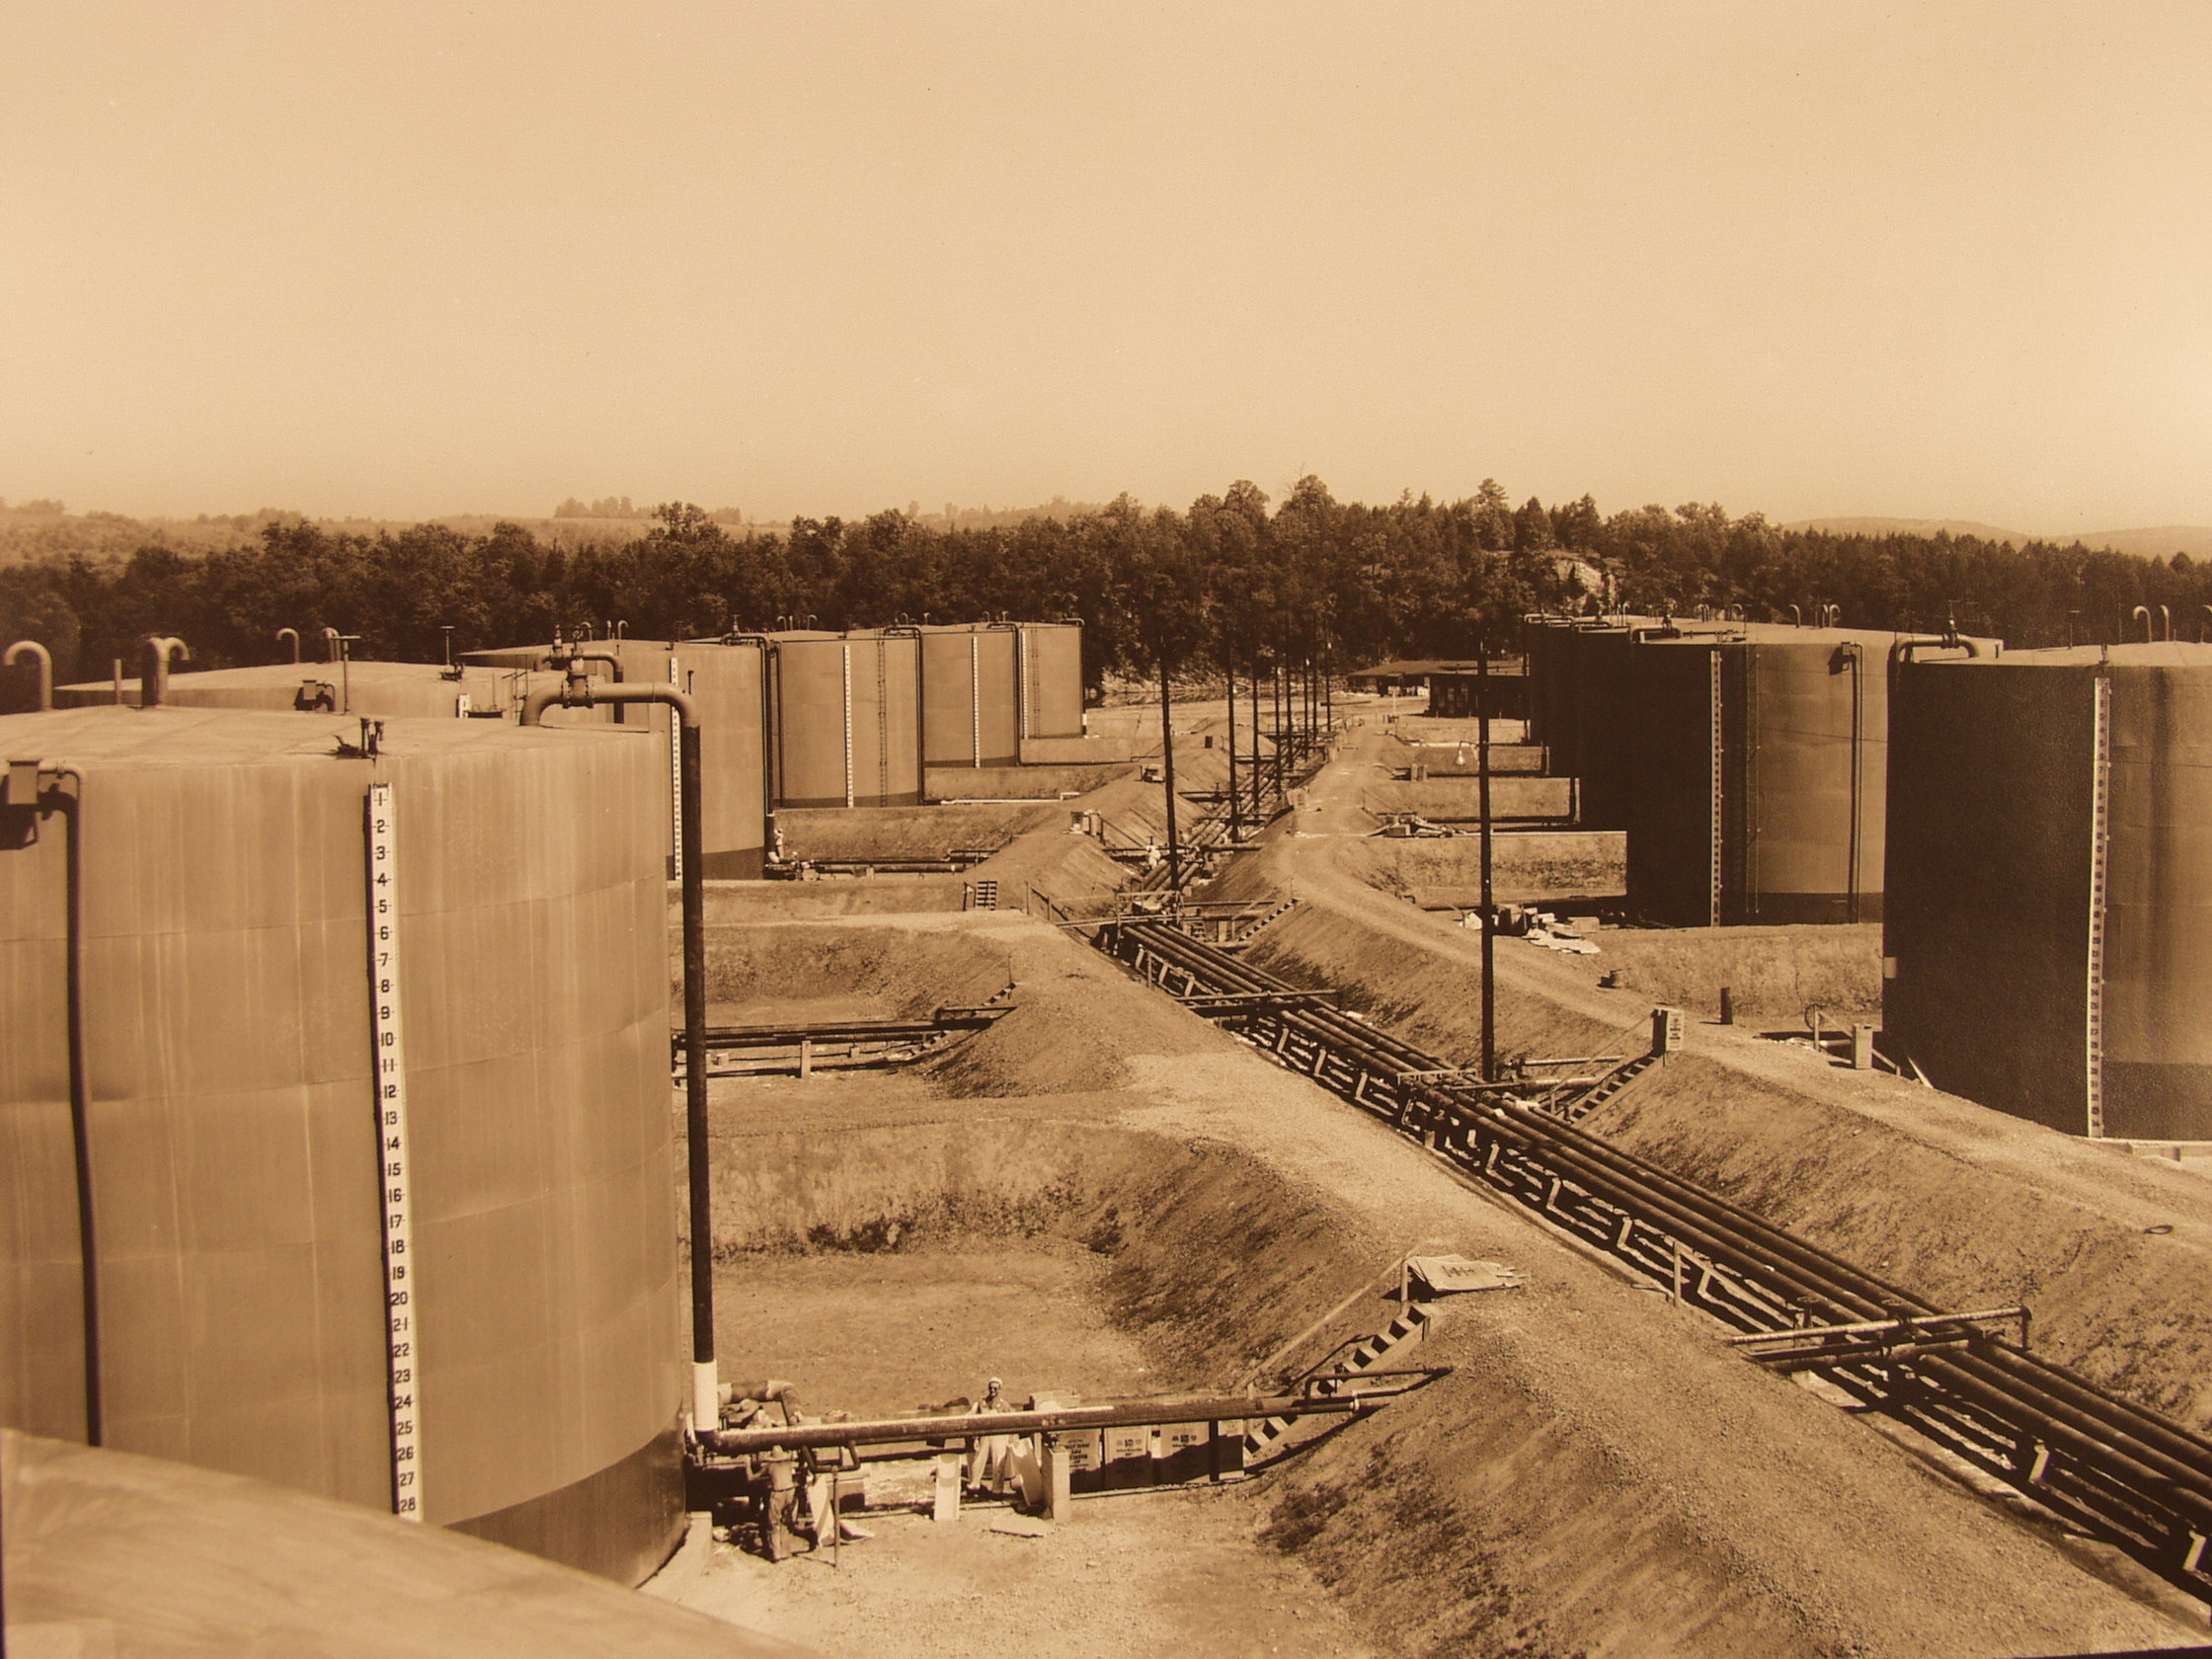 S-50 oil tanks.